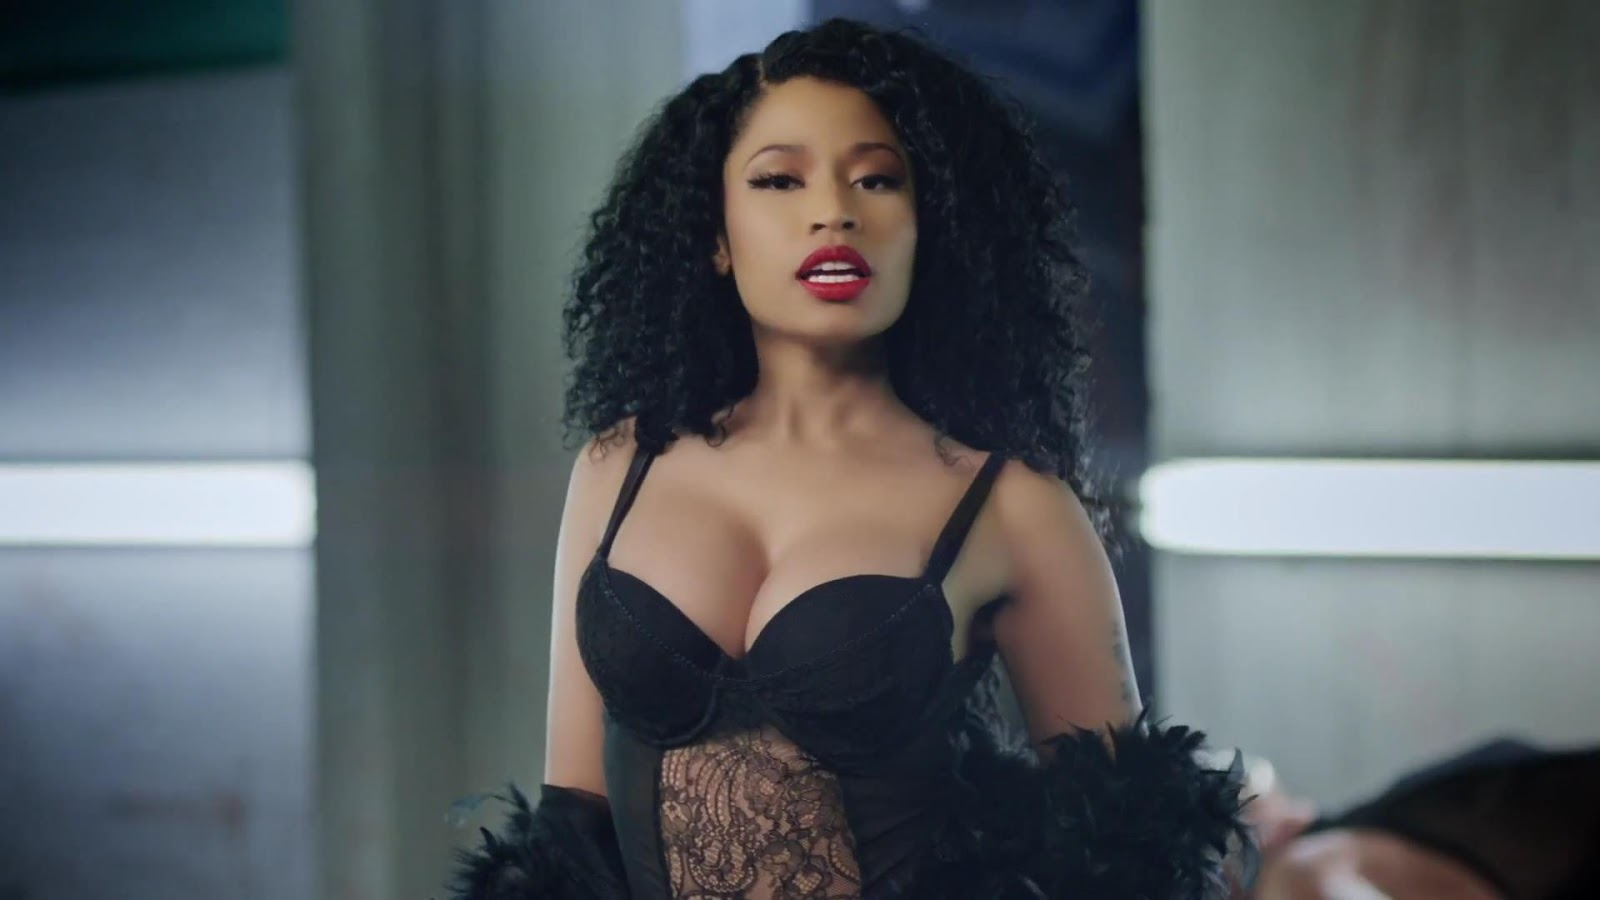 Nicki Minaj Hot Photo Gallery